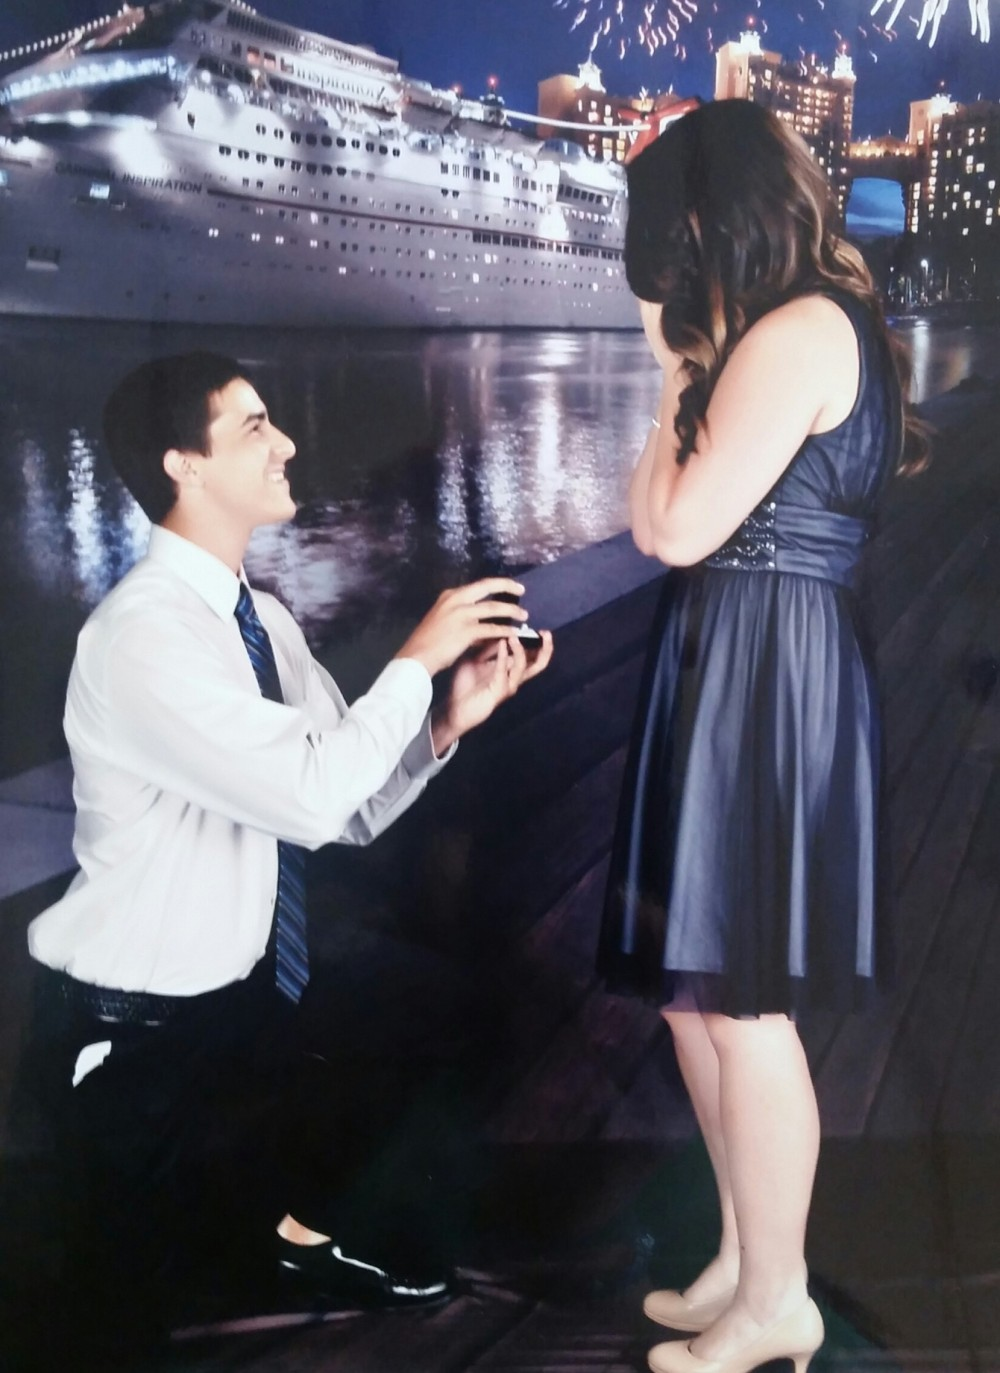 Image 2 of Brandi and Daniel's Marriage Proposal on a Carnival Cruise